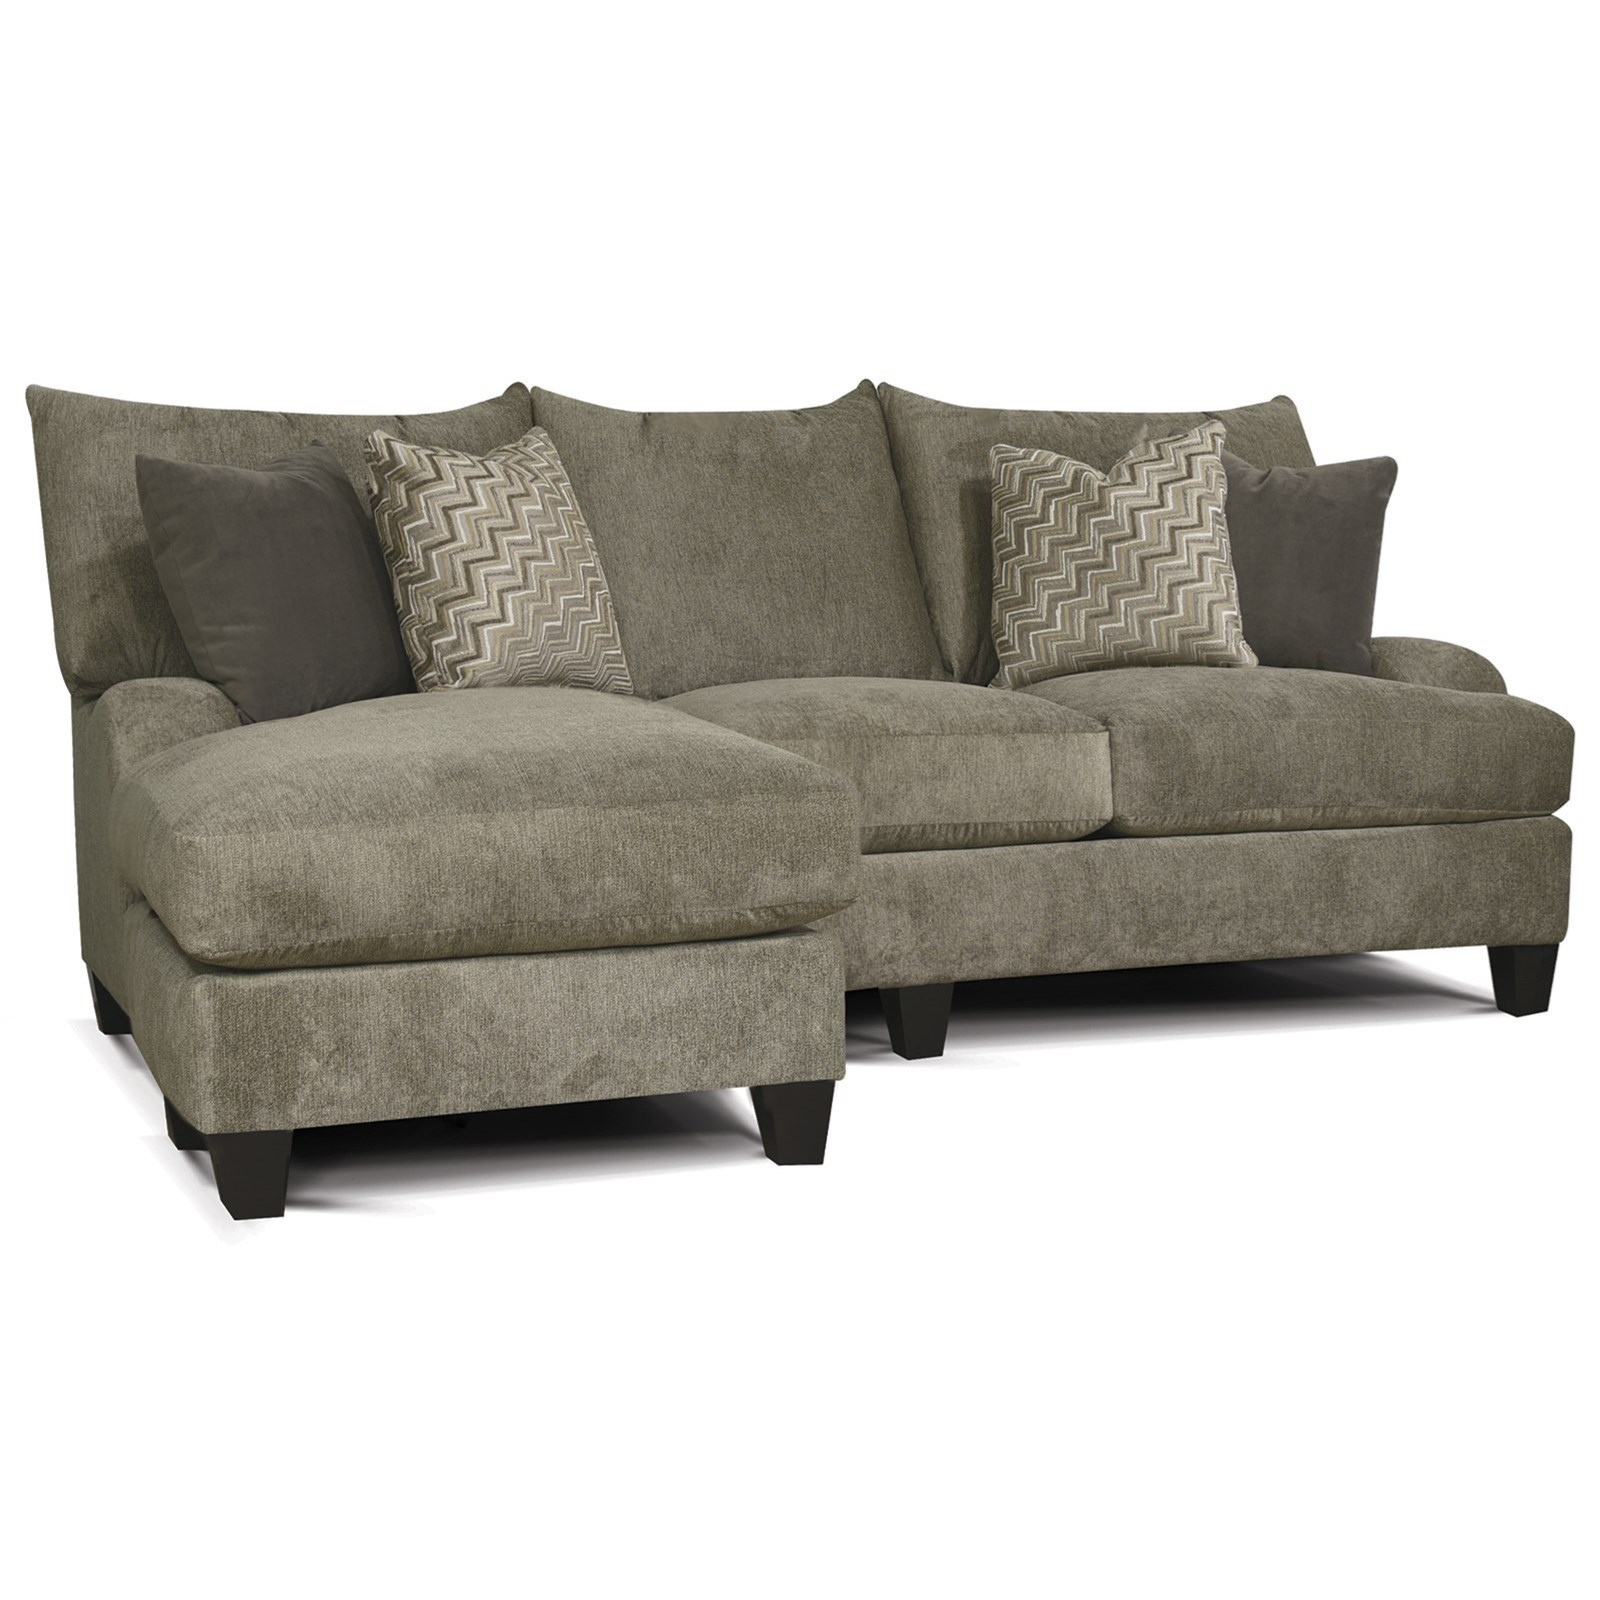 Otto Sale Sofa Catalina Contemporary Sofa With Floating Otto Chaise By England At Dunk Bright Furniture